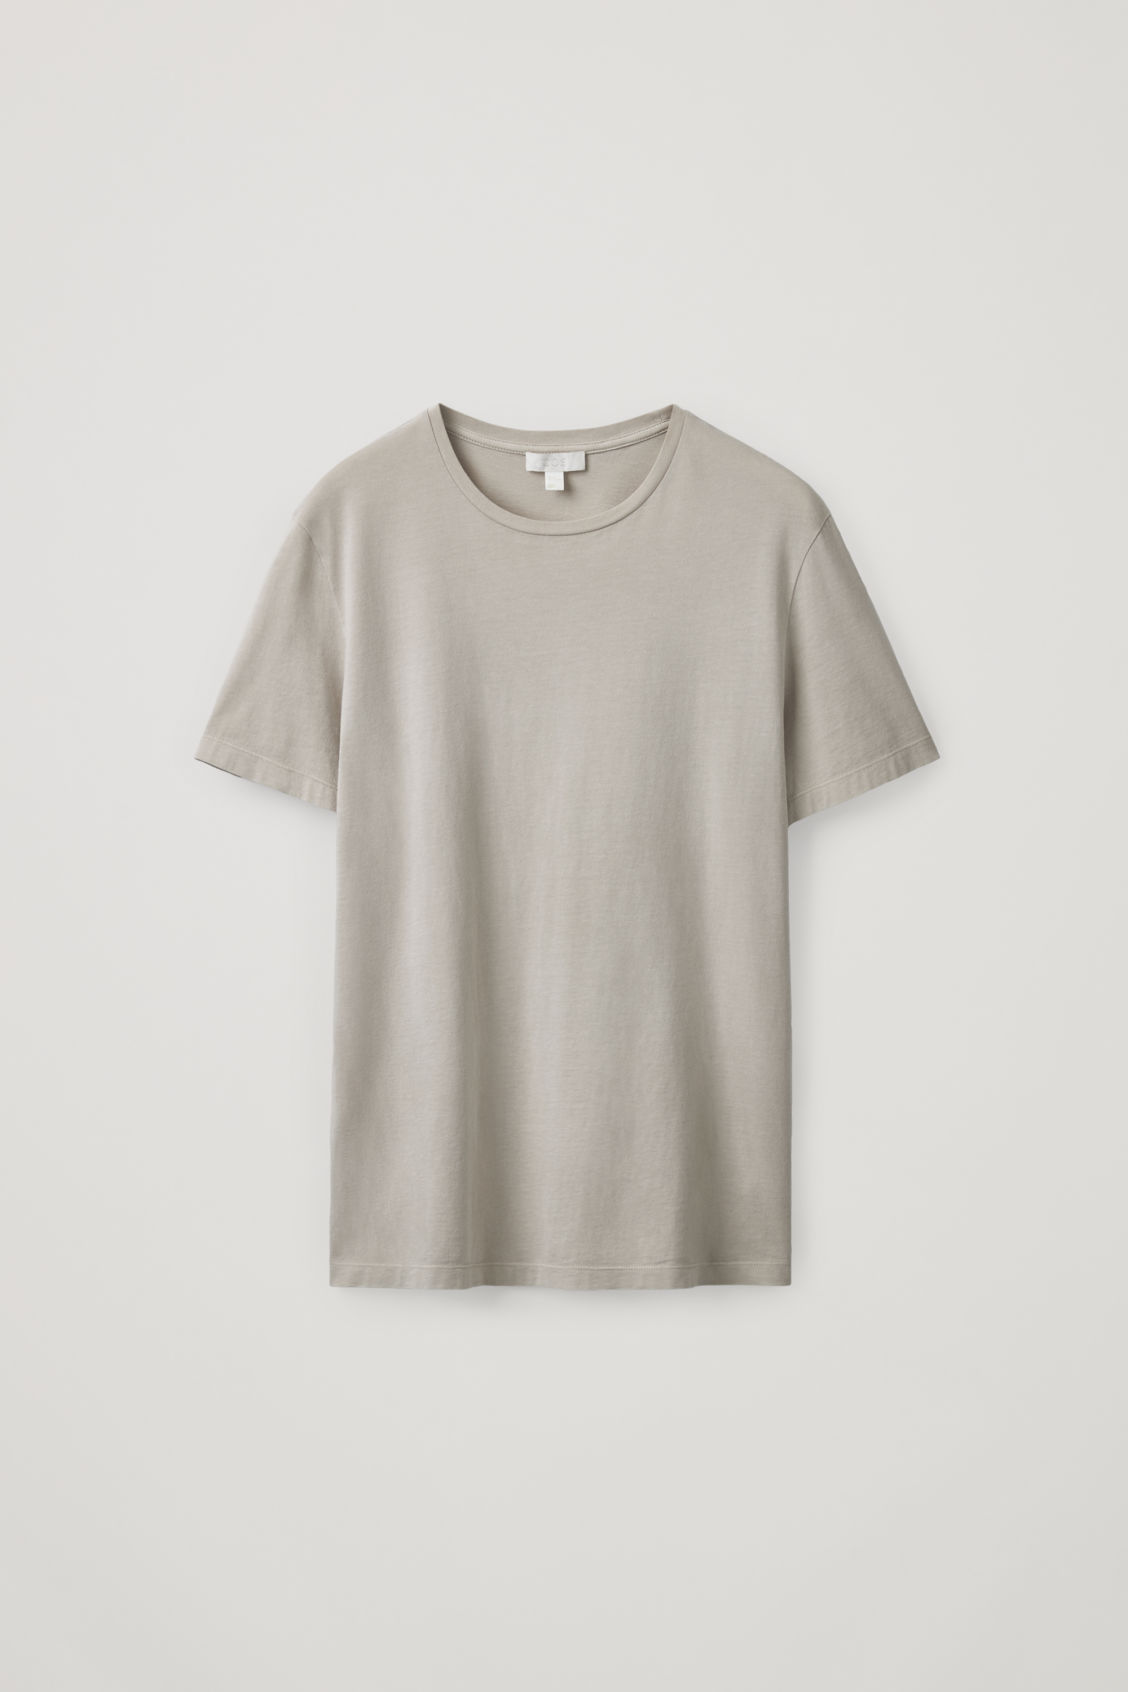 Cos Round-neck T-shirt In Brown